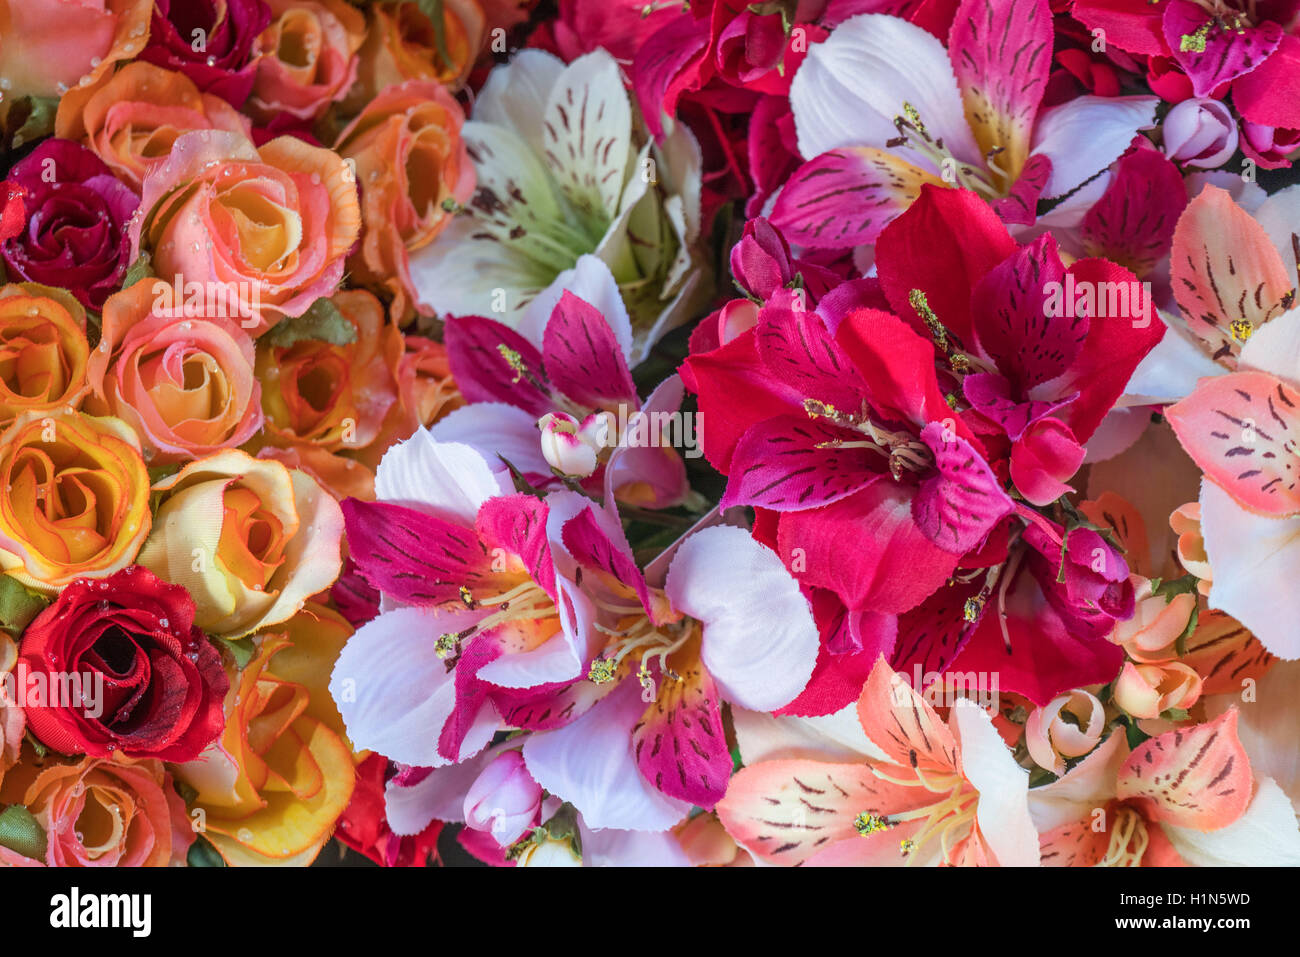 Silk Flowers , Old City Center Nice, Vieille Nice, Alpes Maritimes, Provence, French Riviera, Mediterranean, France, Stock Photo